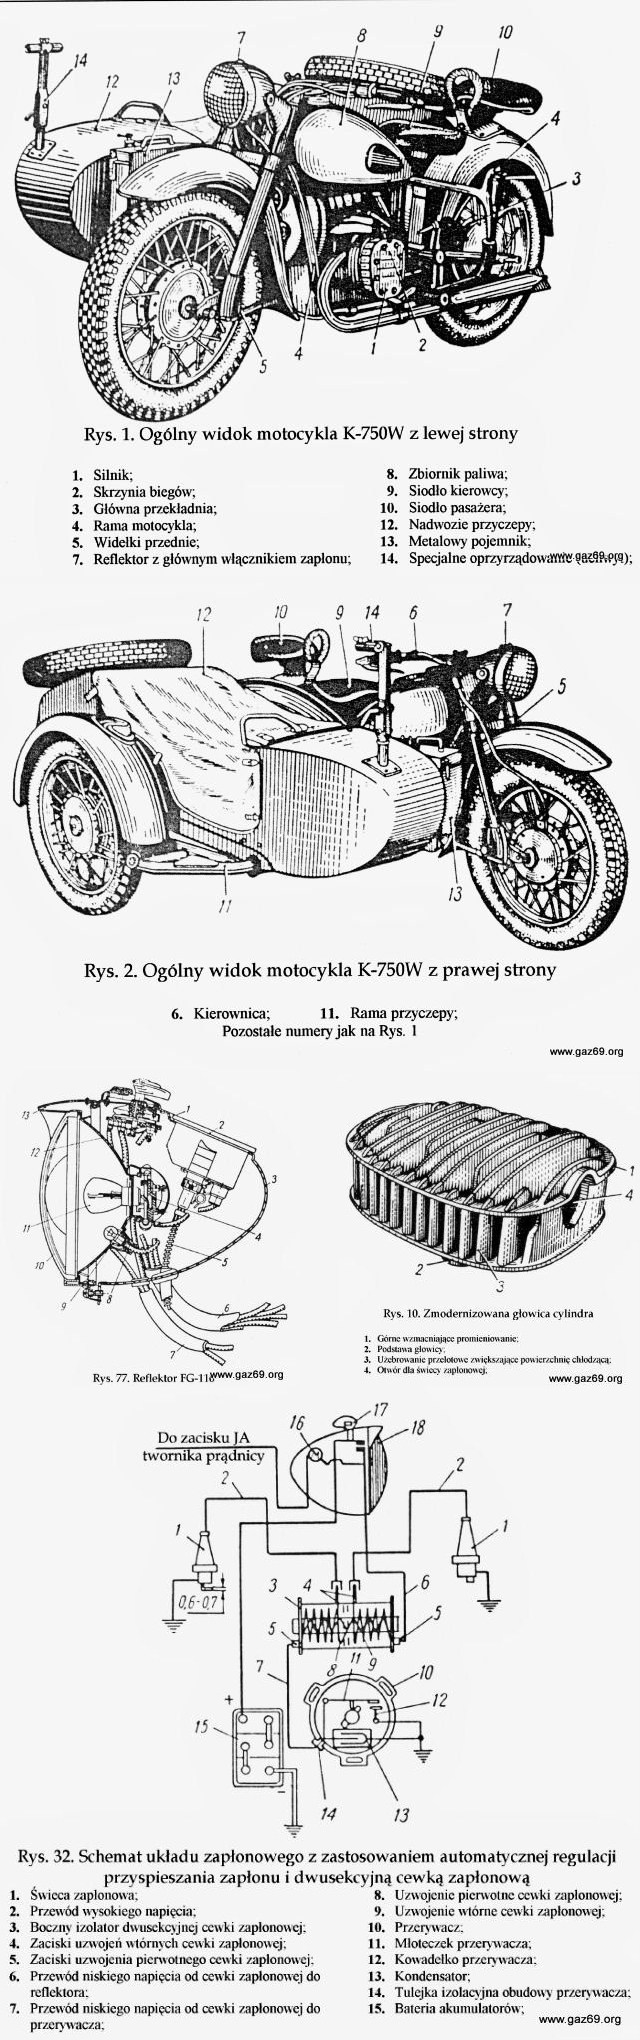 Gaz 69 Ural Engine Diagram Modernised Head Rys 77 A Longer Headlight Used In Later Models 32 Of The Ignition System With Dual